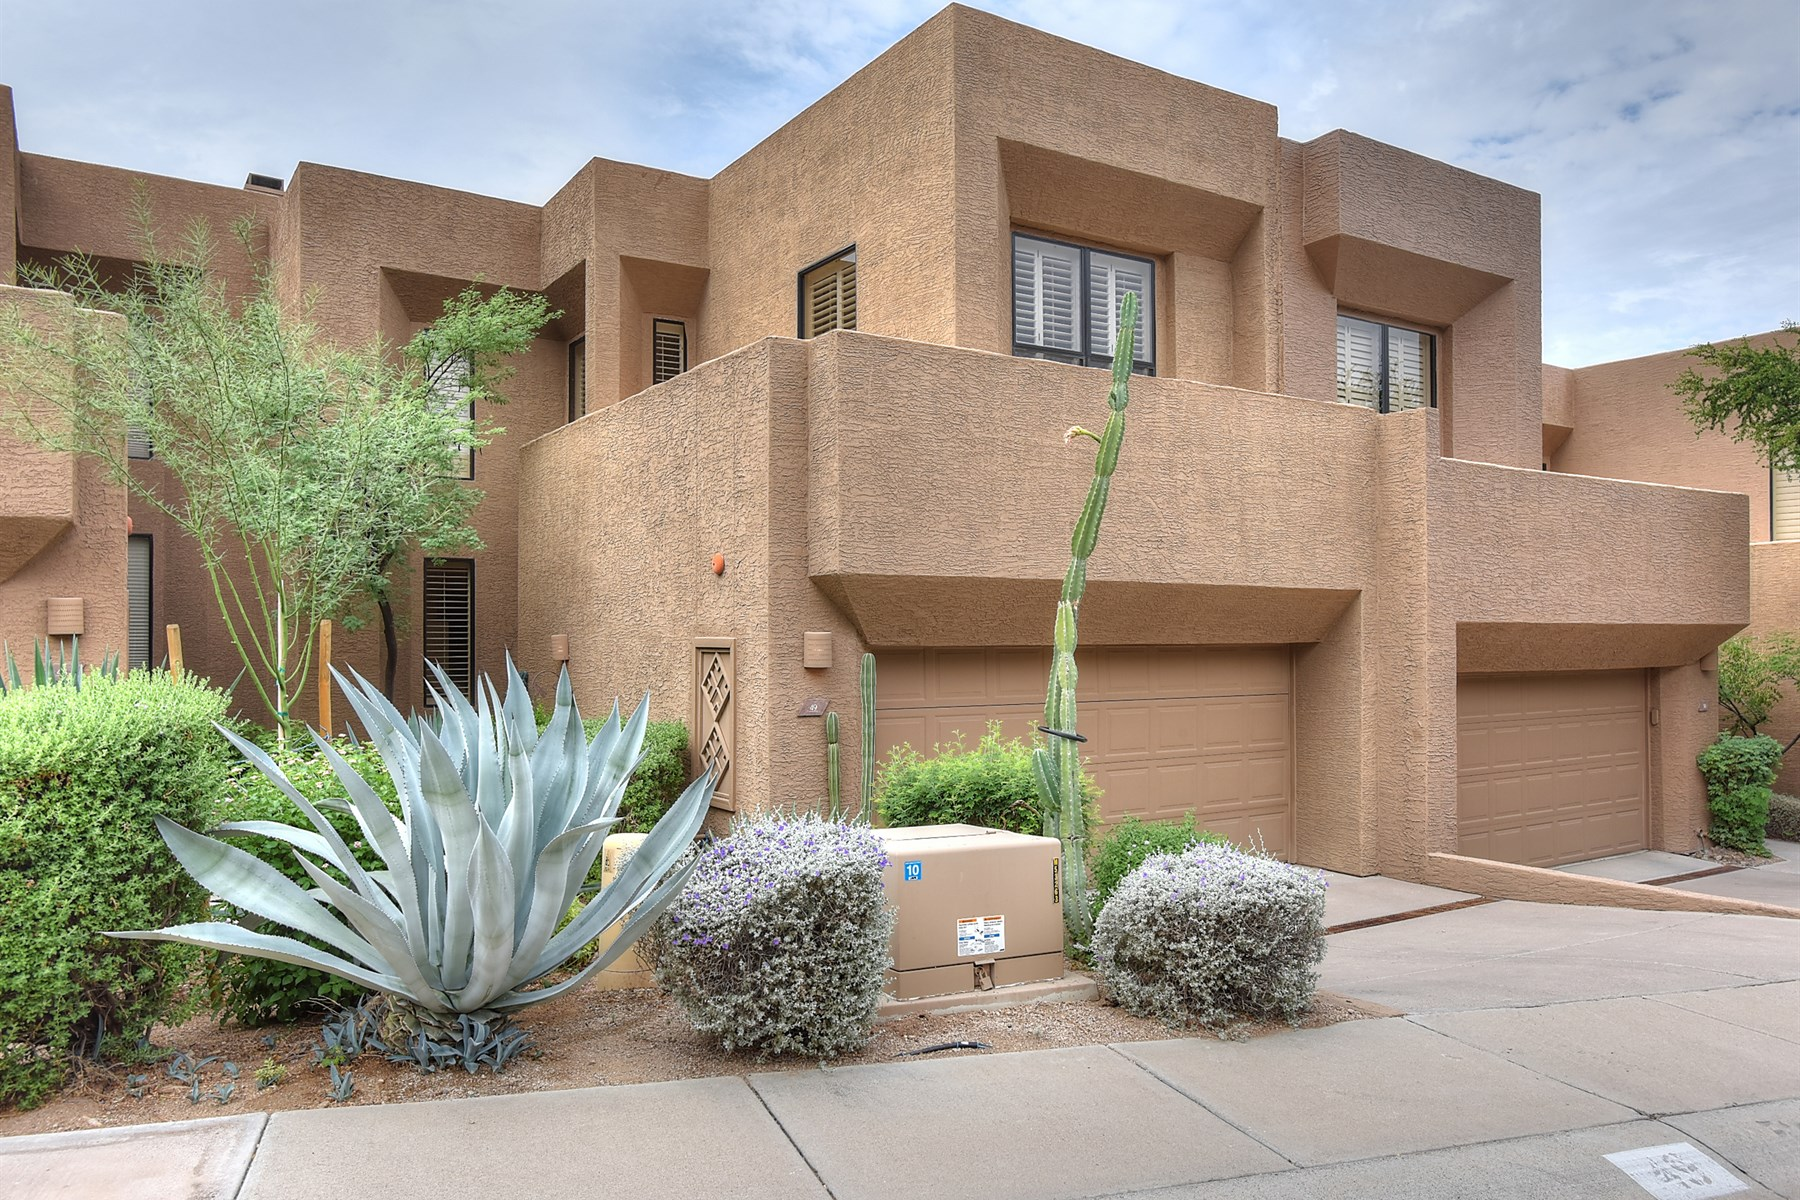 Townhouse for Sale at Private townhome is located in the Troon Village Community of Skye Top 25555 N Windy Walk Dr 49 Scottsdale, Arizona 85255 United States